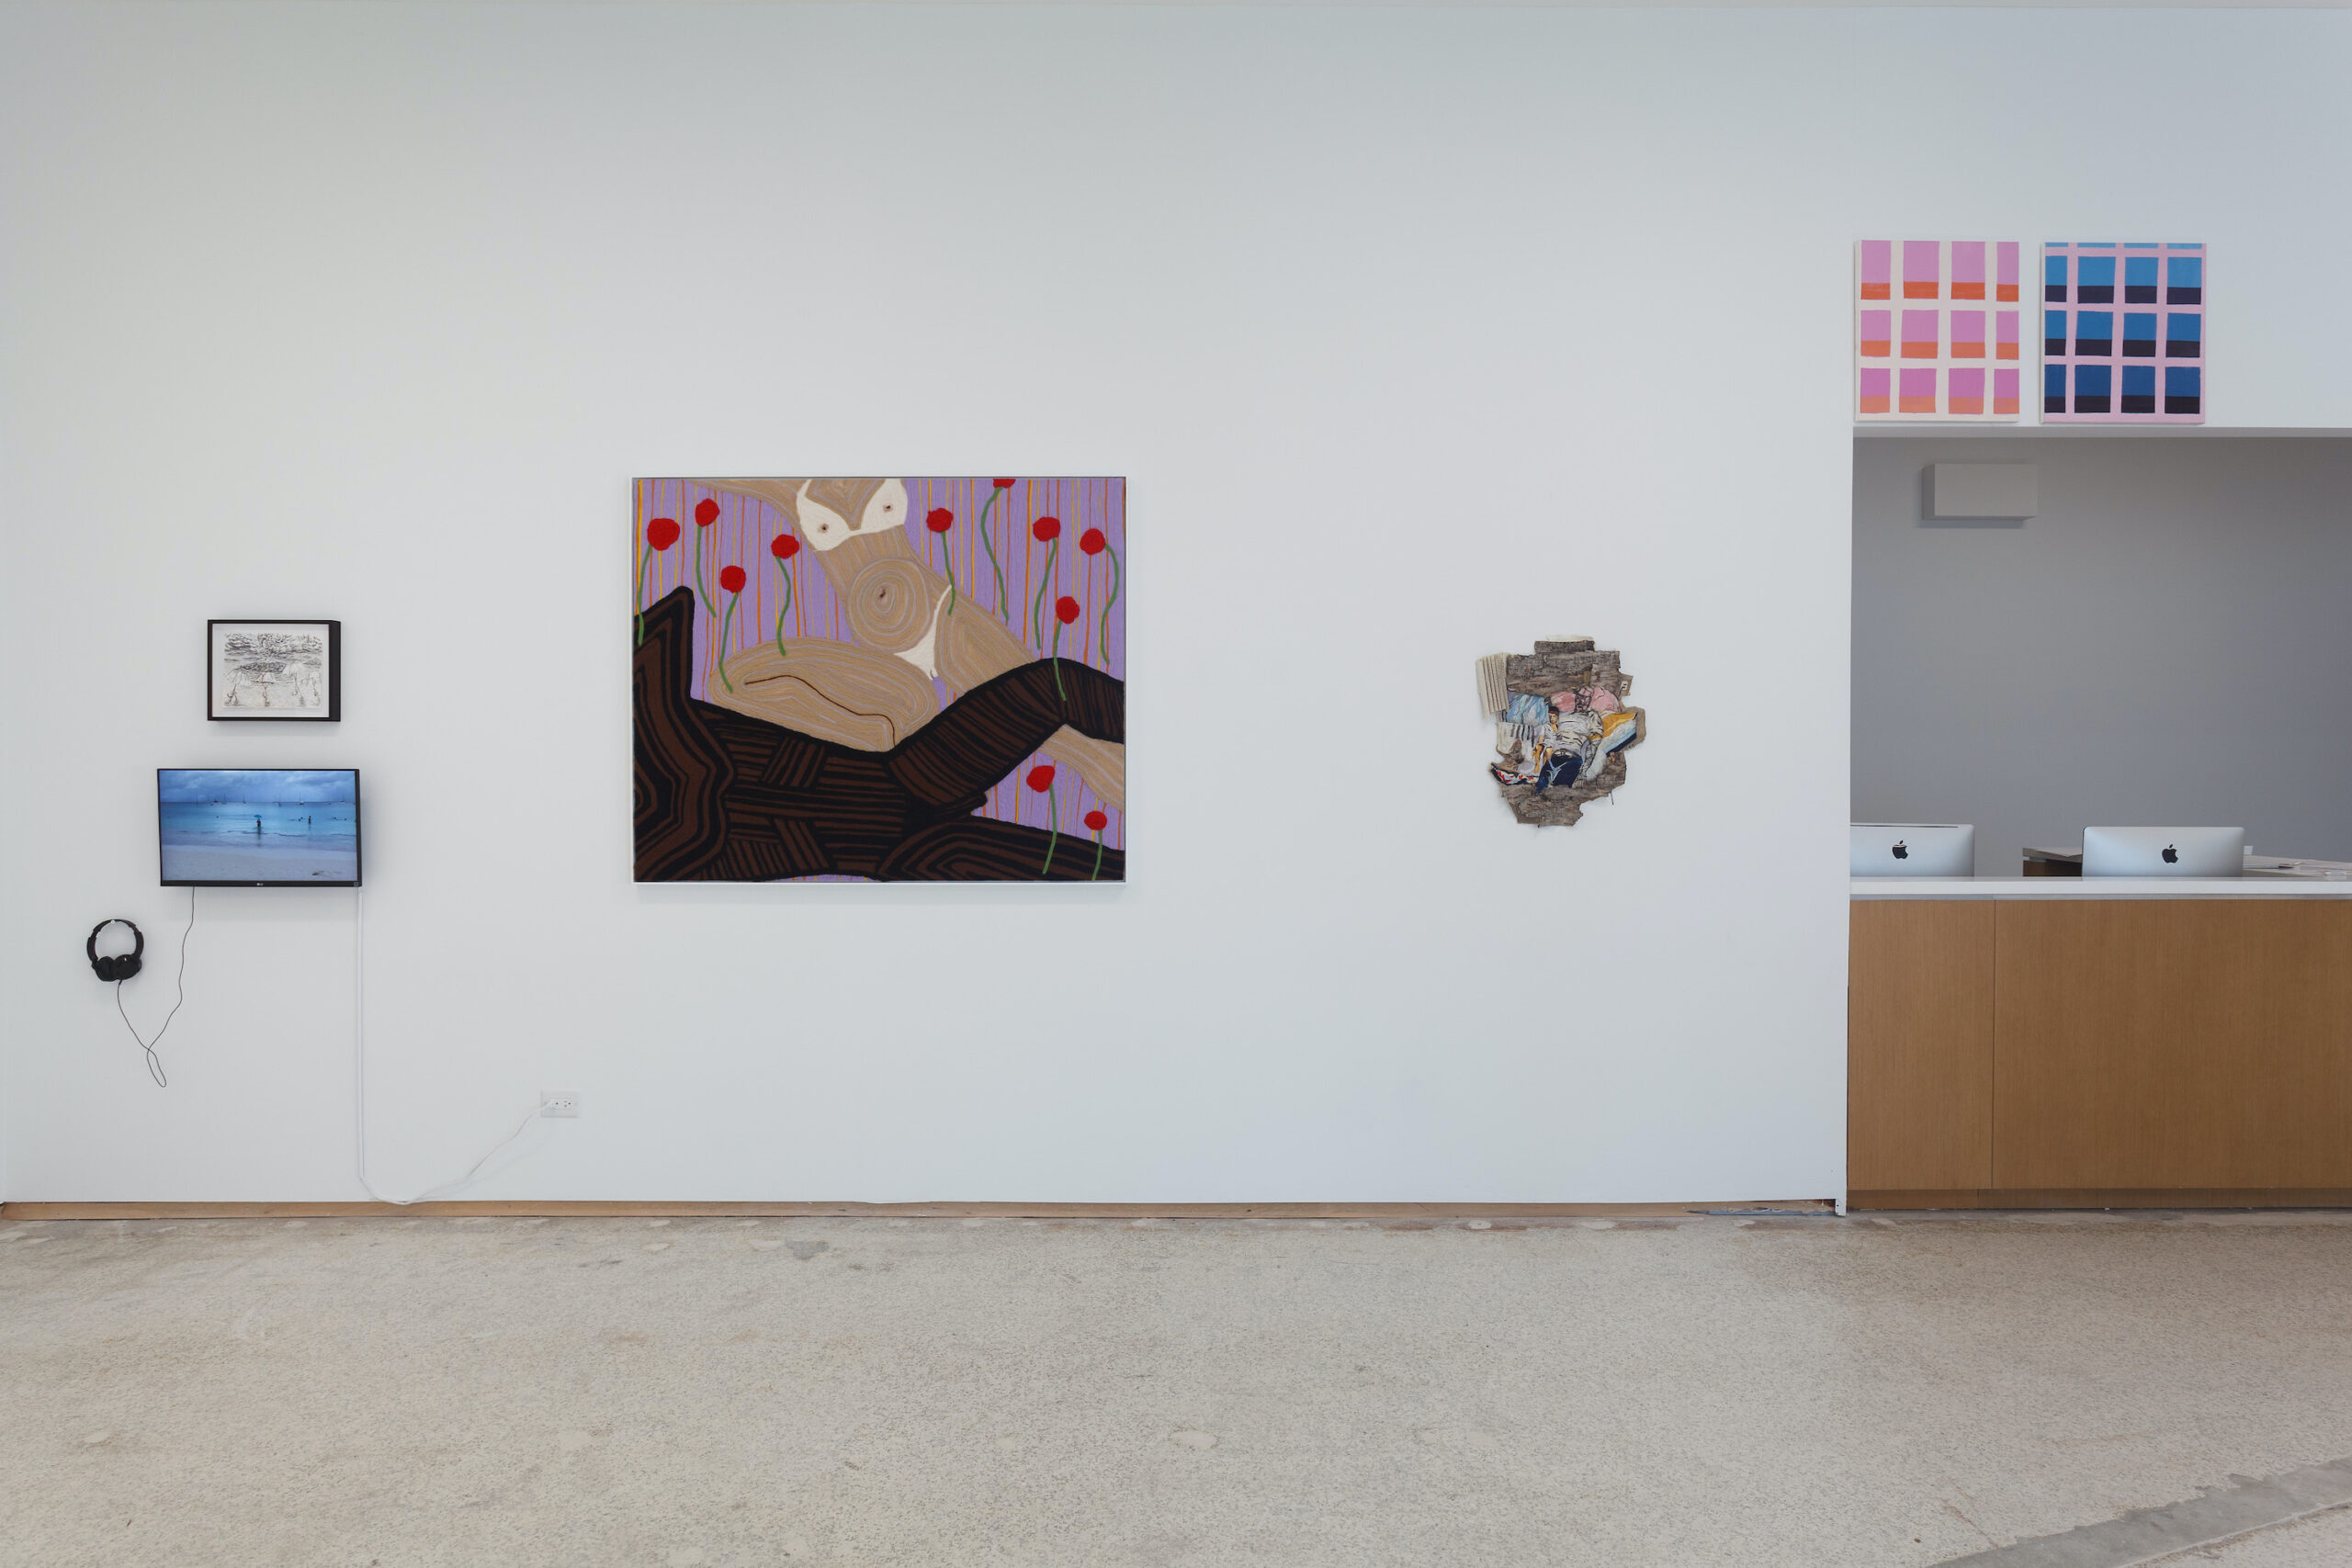 our constellations: astral embraces and tactual consciousness (Installation view e), 2021, Emerson Dorsch, Miami FL